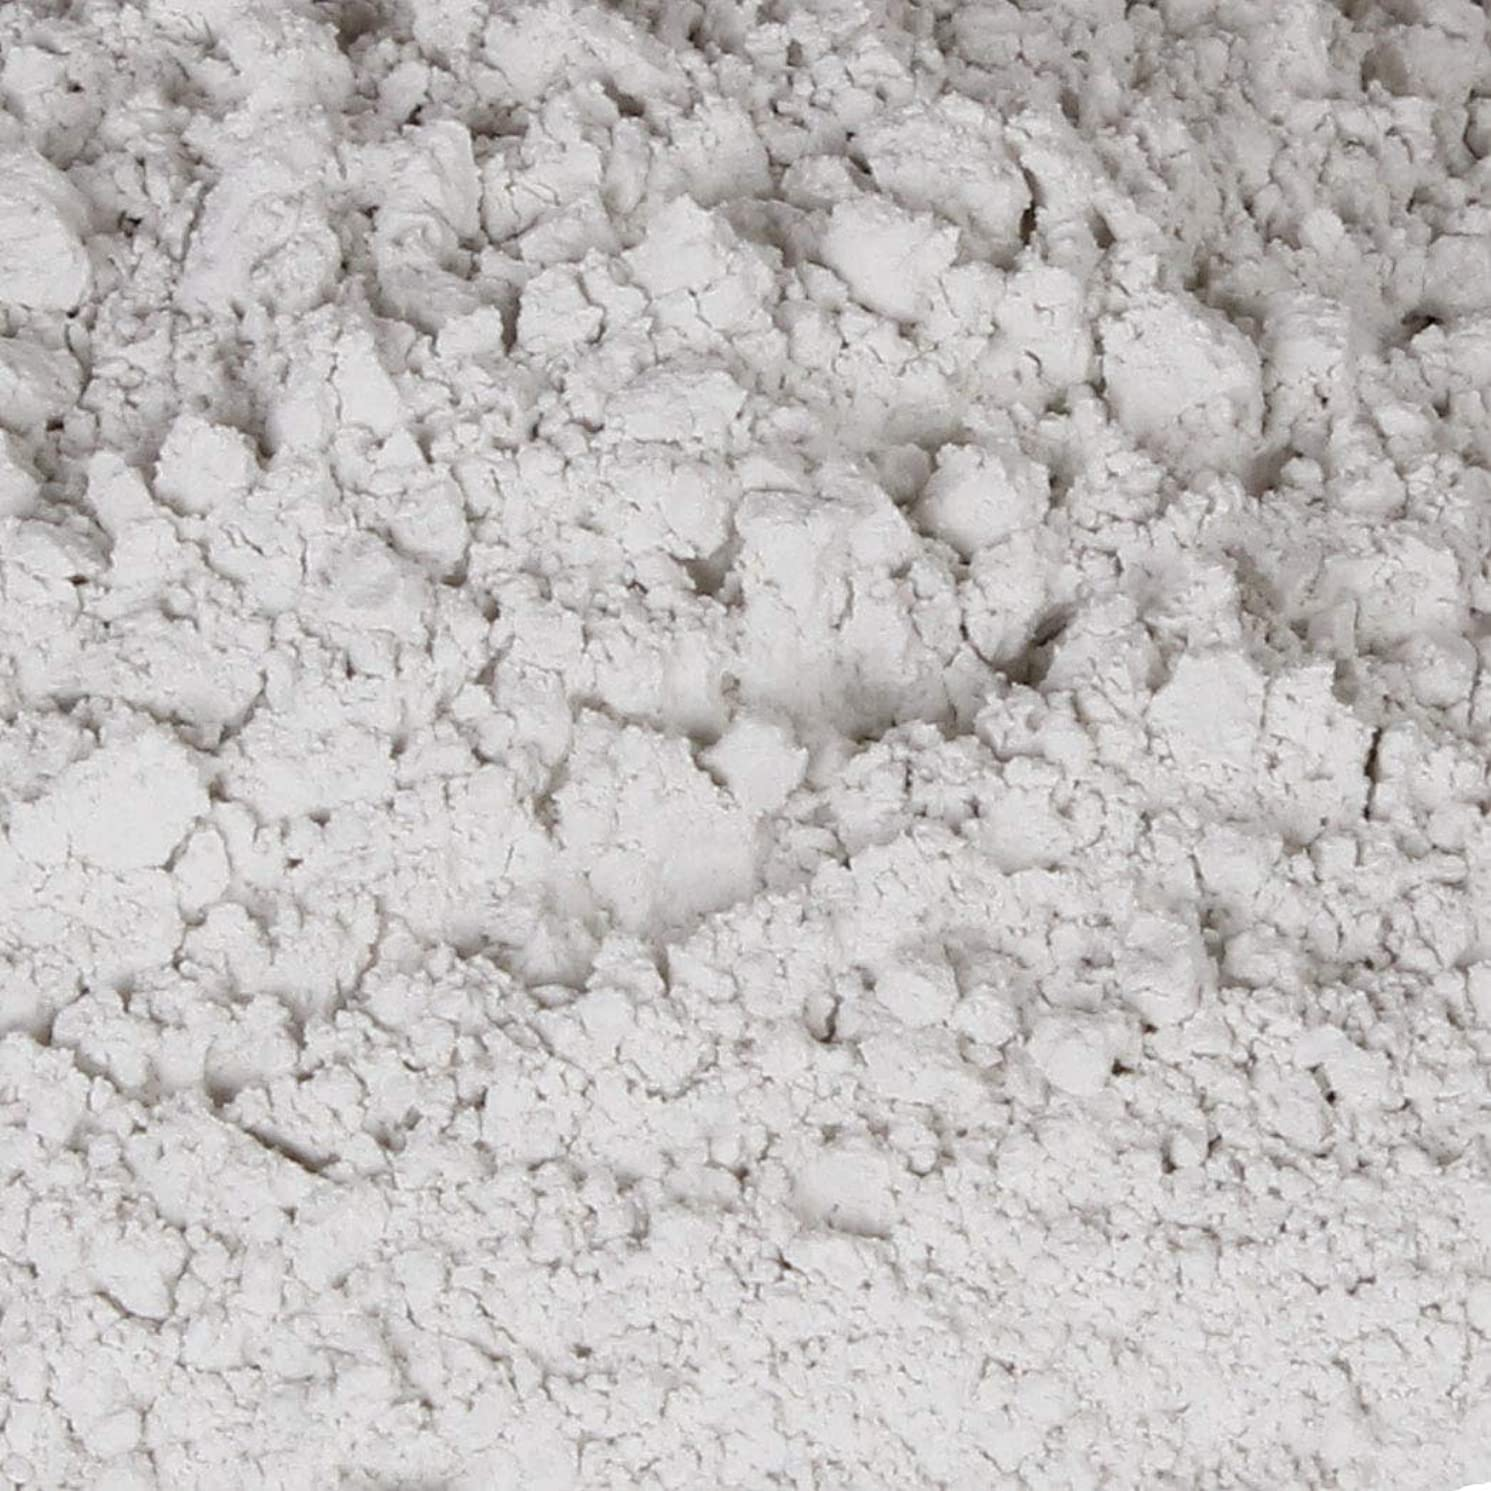 Milltown Merchants 16 oz White Grout - Great for Mosaic Making - 1 Pound of Mosaic Tile Grout